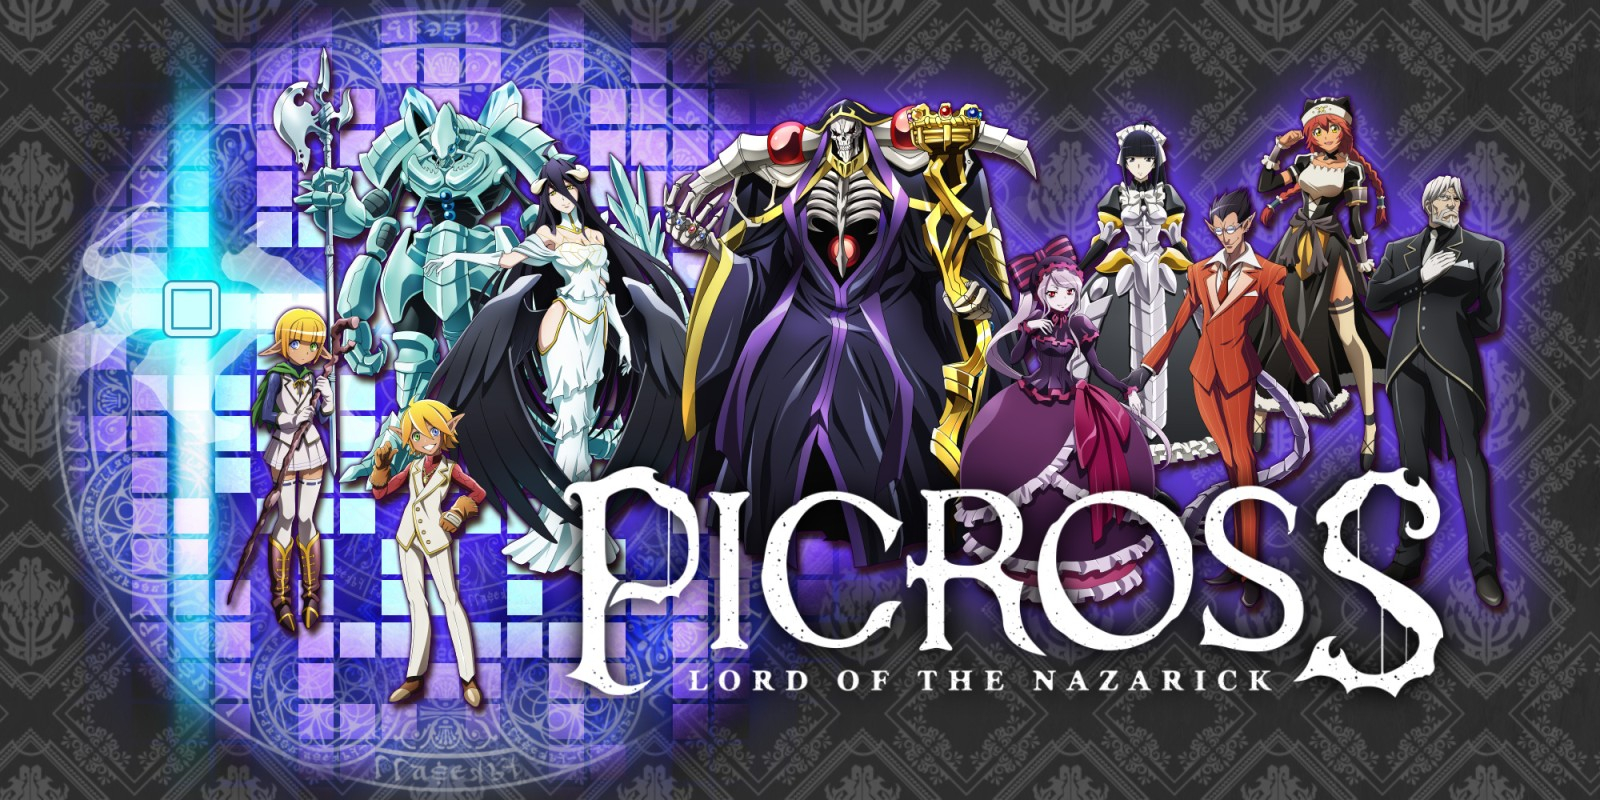 Picross: Lord of the Nazarick Masthead